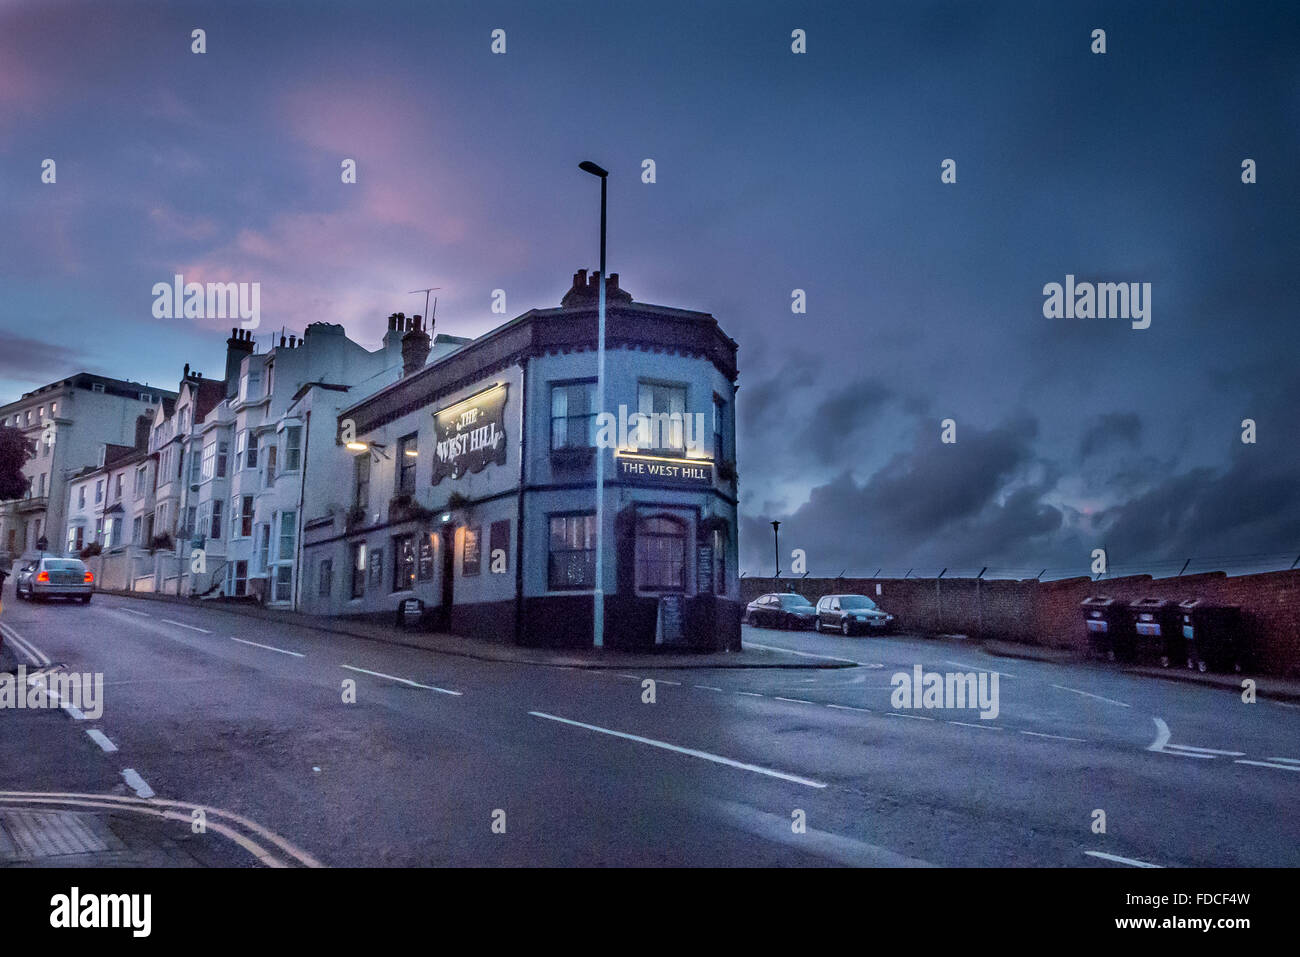 Dusk over the West Hill pub in Brighton. - Stock Image